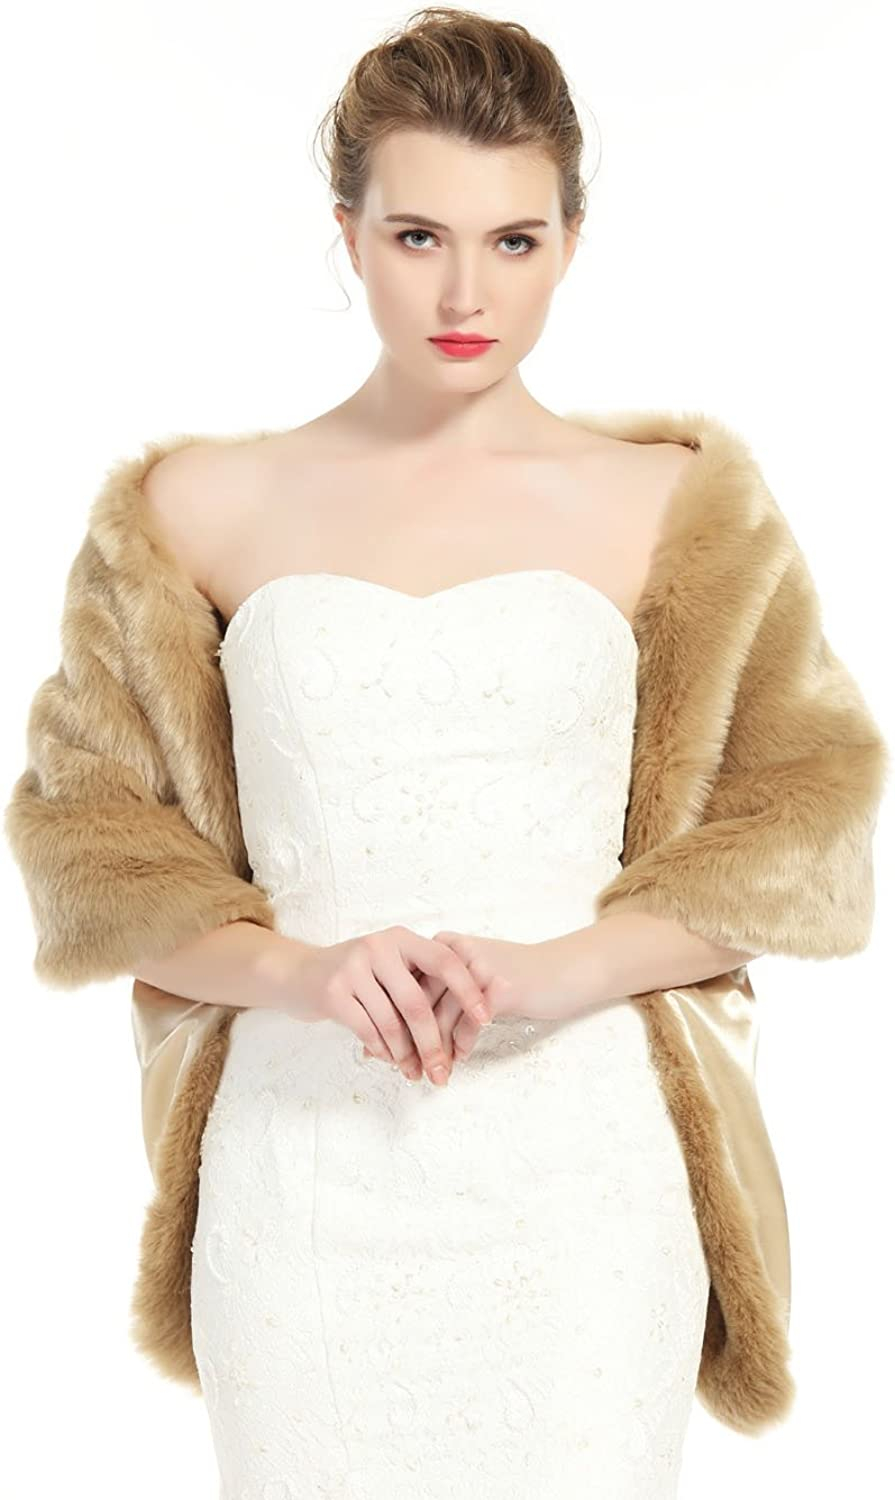 BEAUTELICATE Women's Faux Fur Shawl Stoles Wrap for Bridal Wedding PartyS62